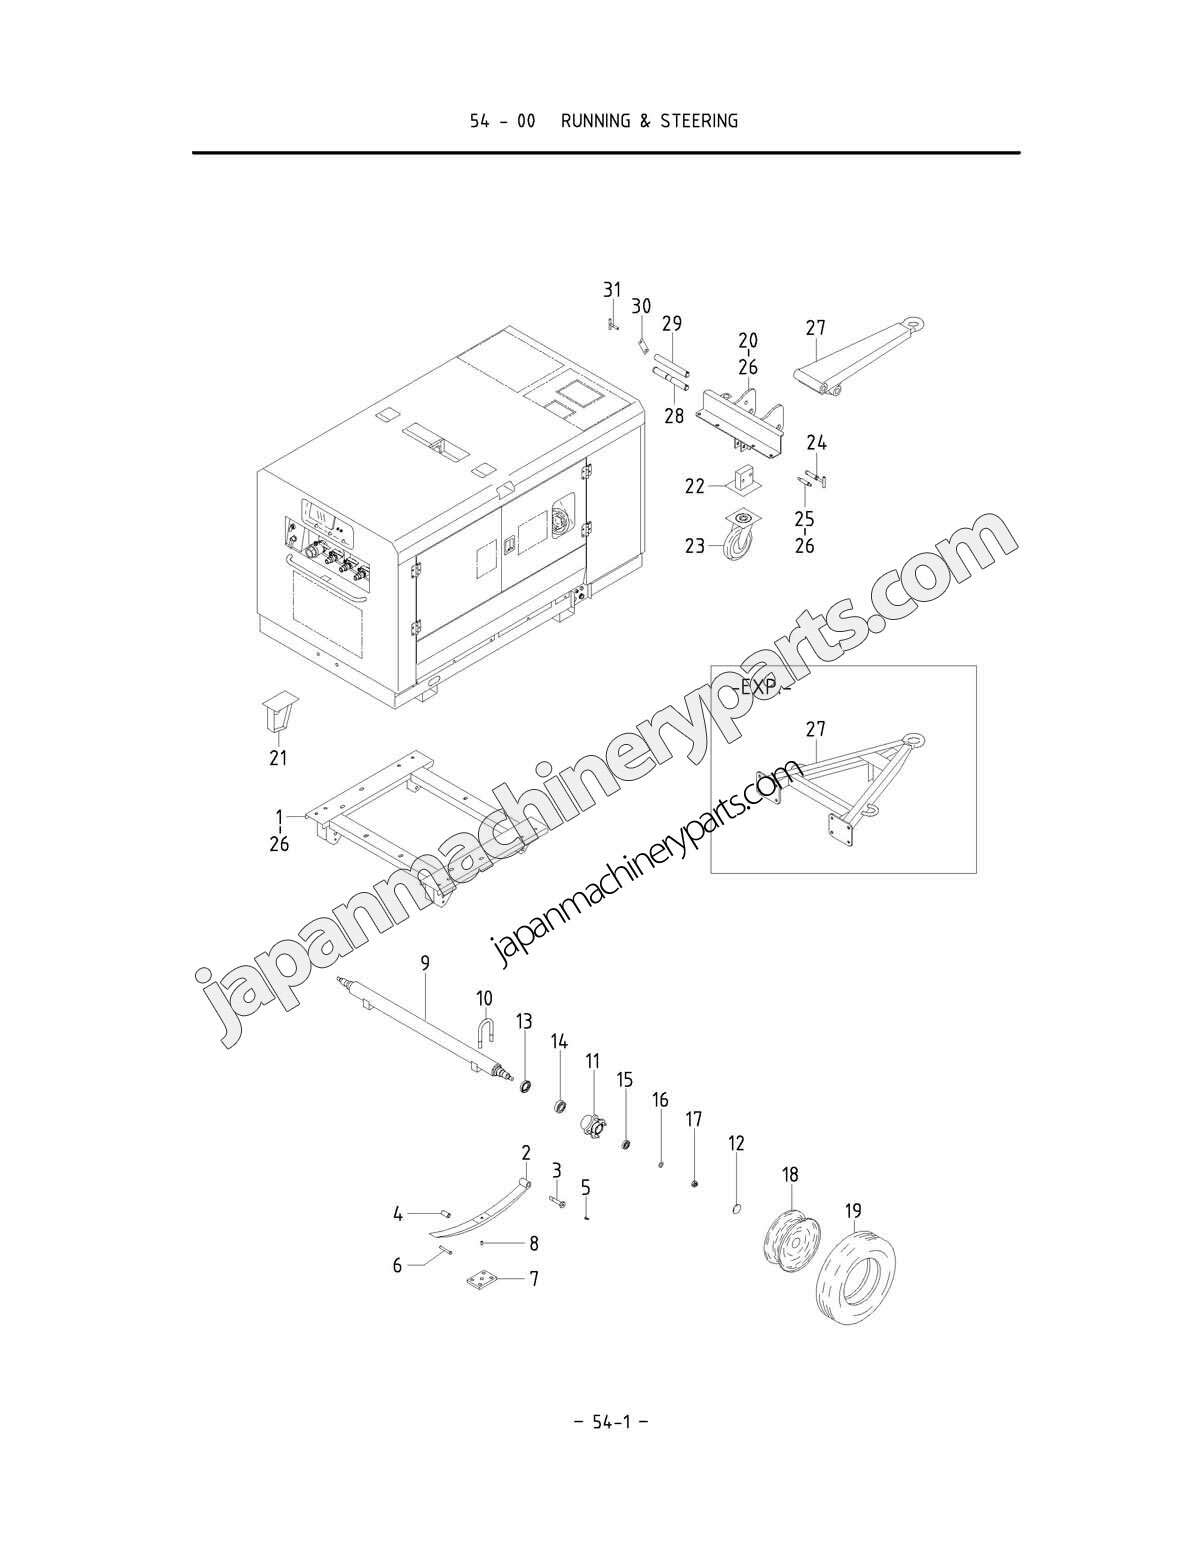 Parts For Airman Pds265s 4b1 5b1 0051 Steering Schematic Running